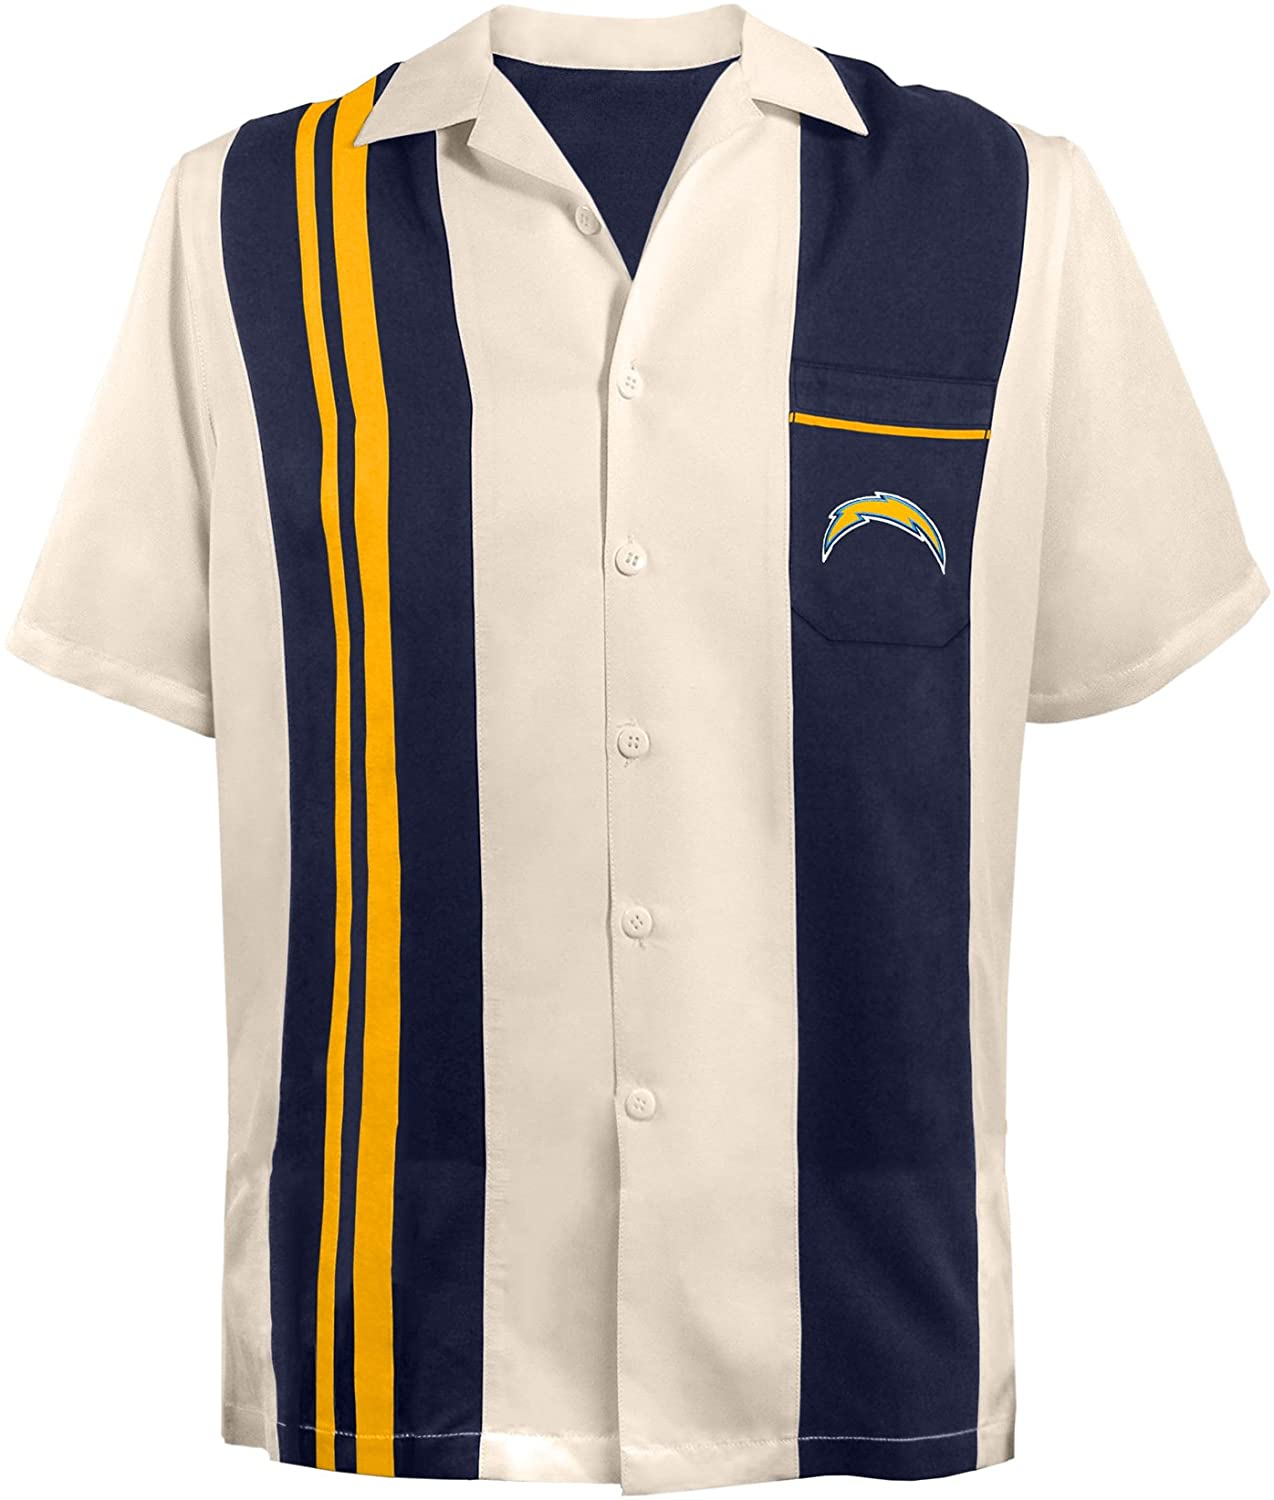 NFL San Diego Chargers Unisex NFL Bowling Shirt Spare, 2-x-Large, Navy Blue